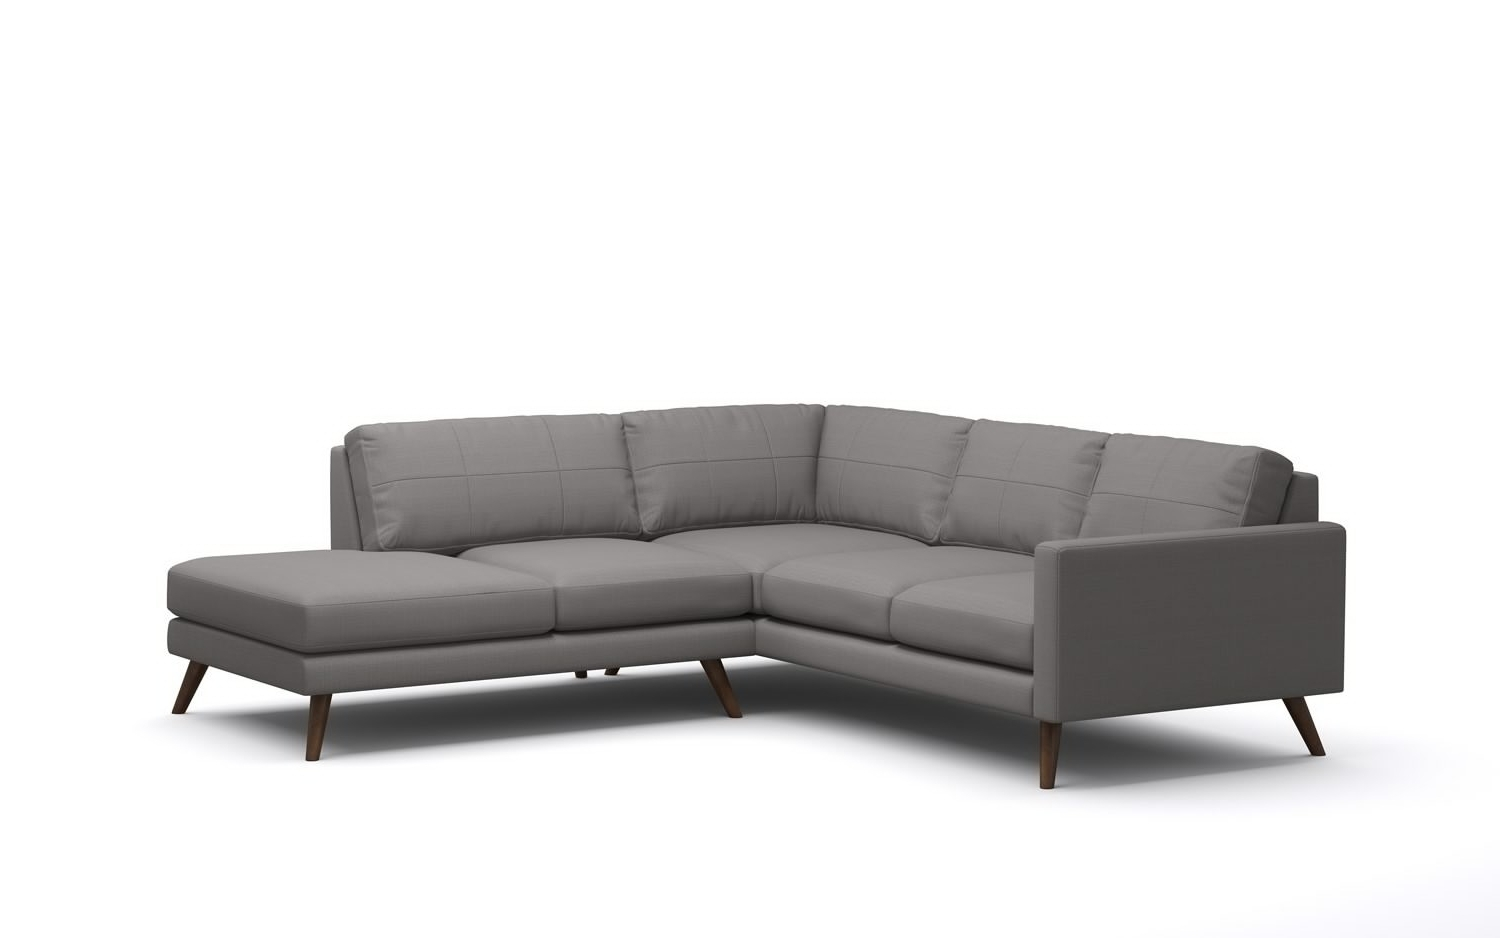 Best And Newest Sectional Sofa Design: European Sectional Sofa Houzz Online Sale For Houzz Sectional Sofas (View 6 of 20)